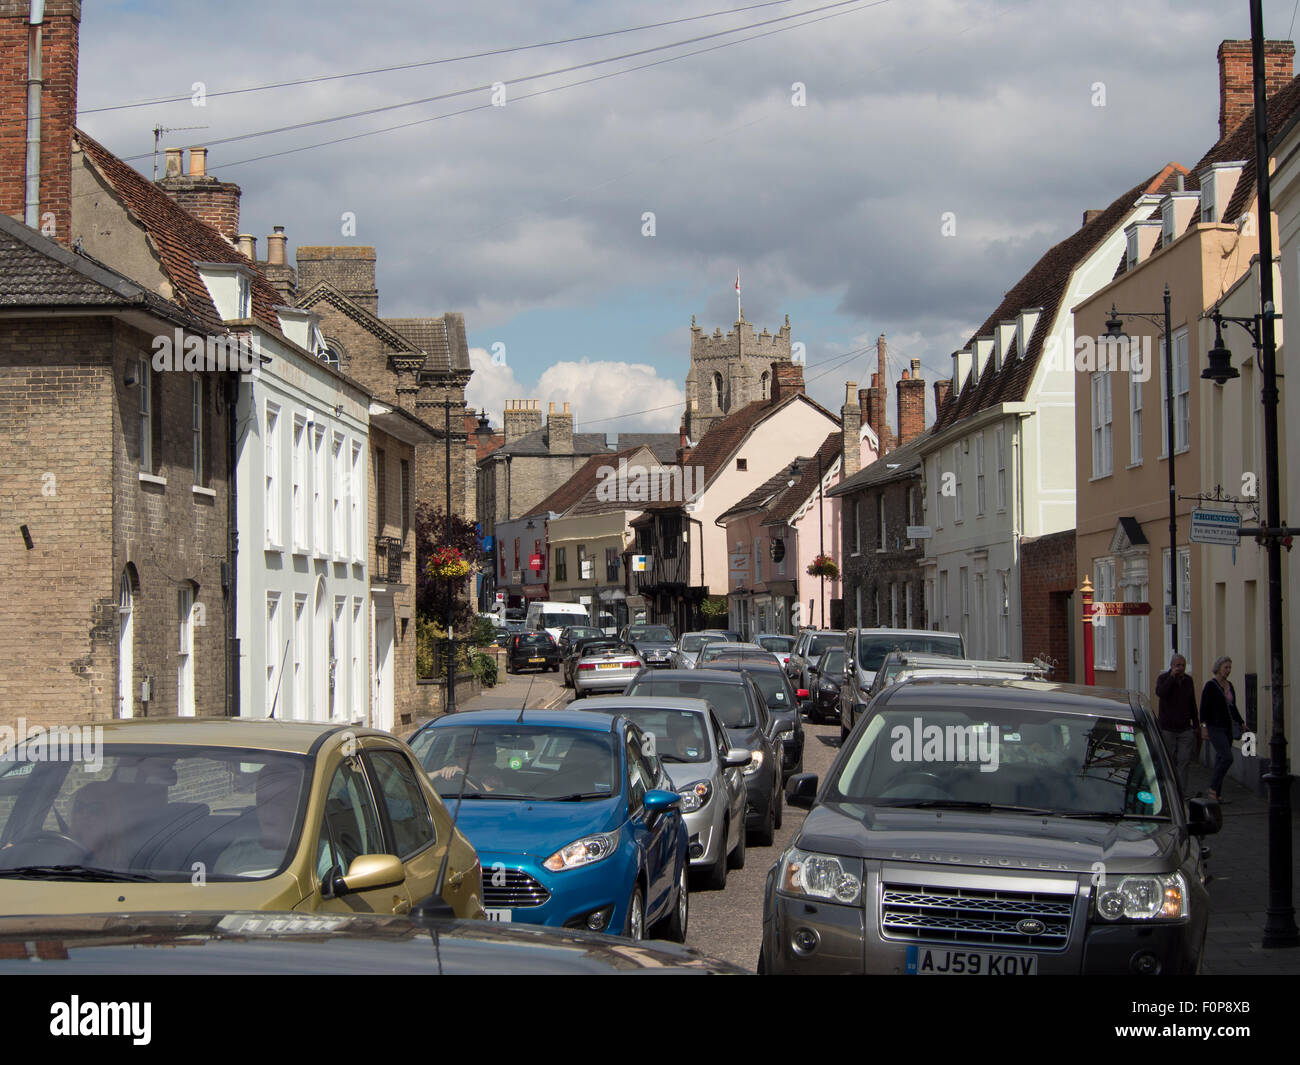 Urban crawl: traffic congestion on the streets of a market town in England - Stock Image